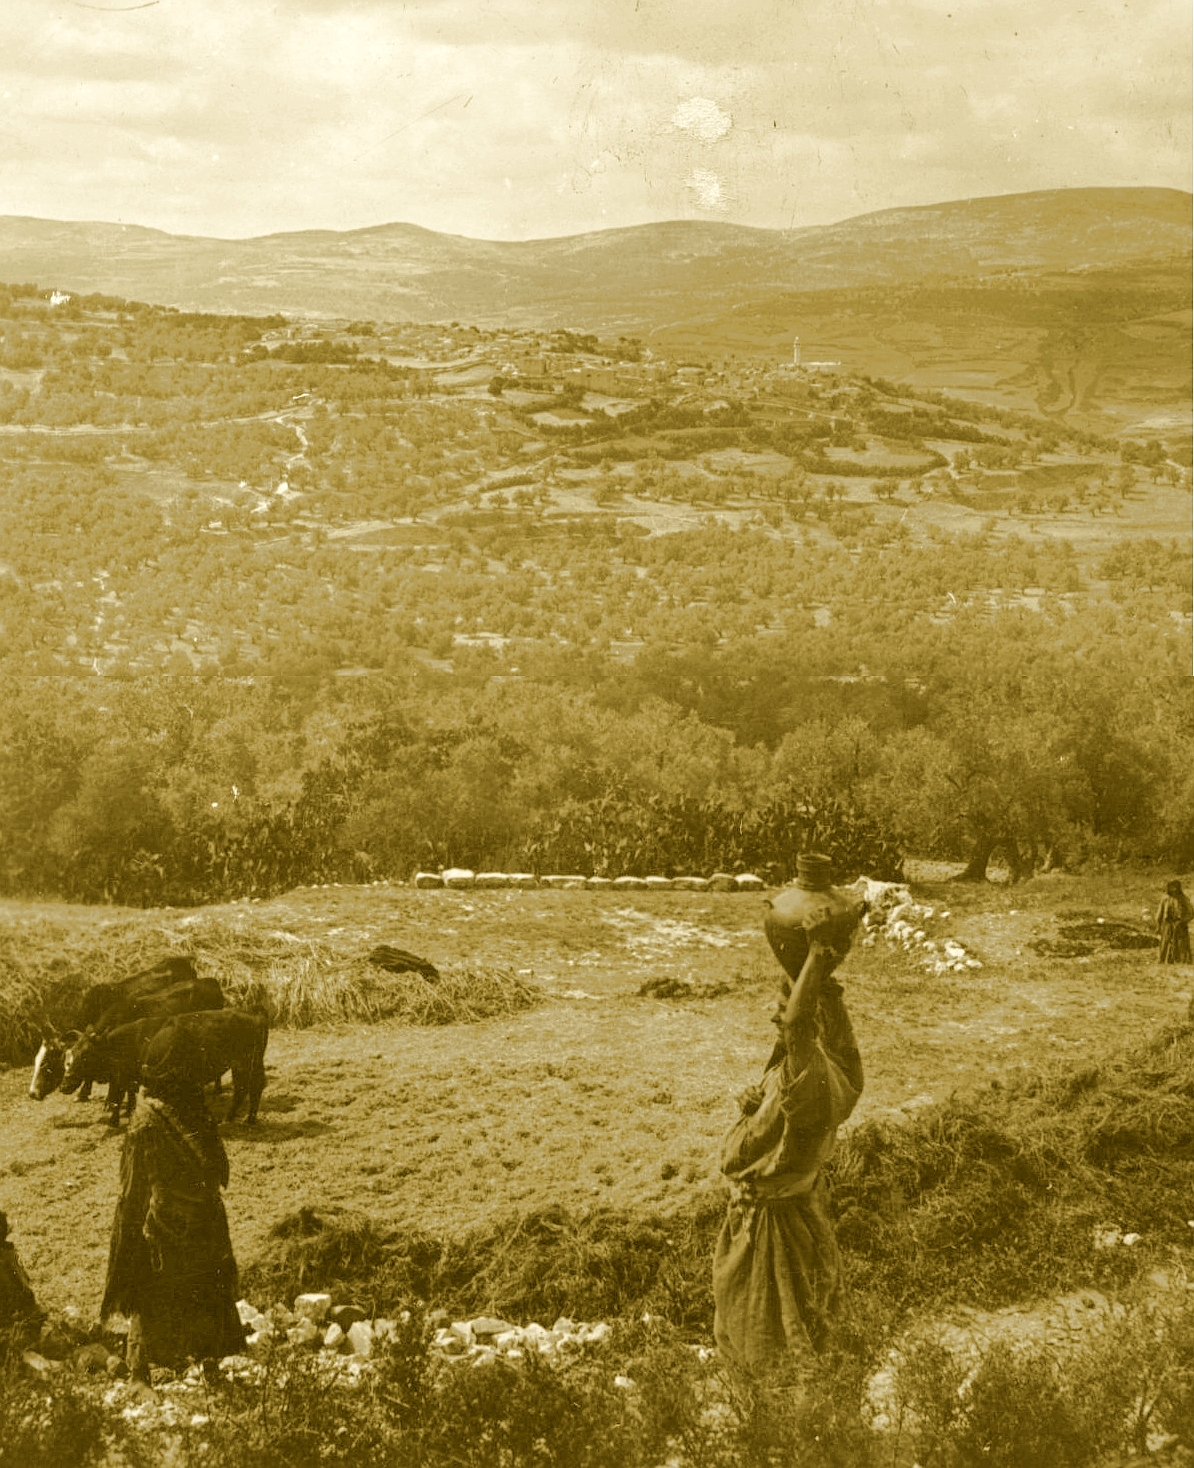 Nablus - نابلس : NABLUS - Late 19th, early 20th c. 109 - Palestinian farmers amongst their olive and fig groves in the hills N. of Nablus (Sabastia in the distance)